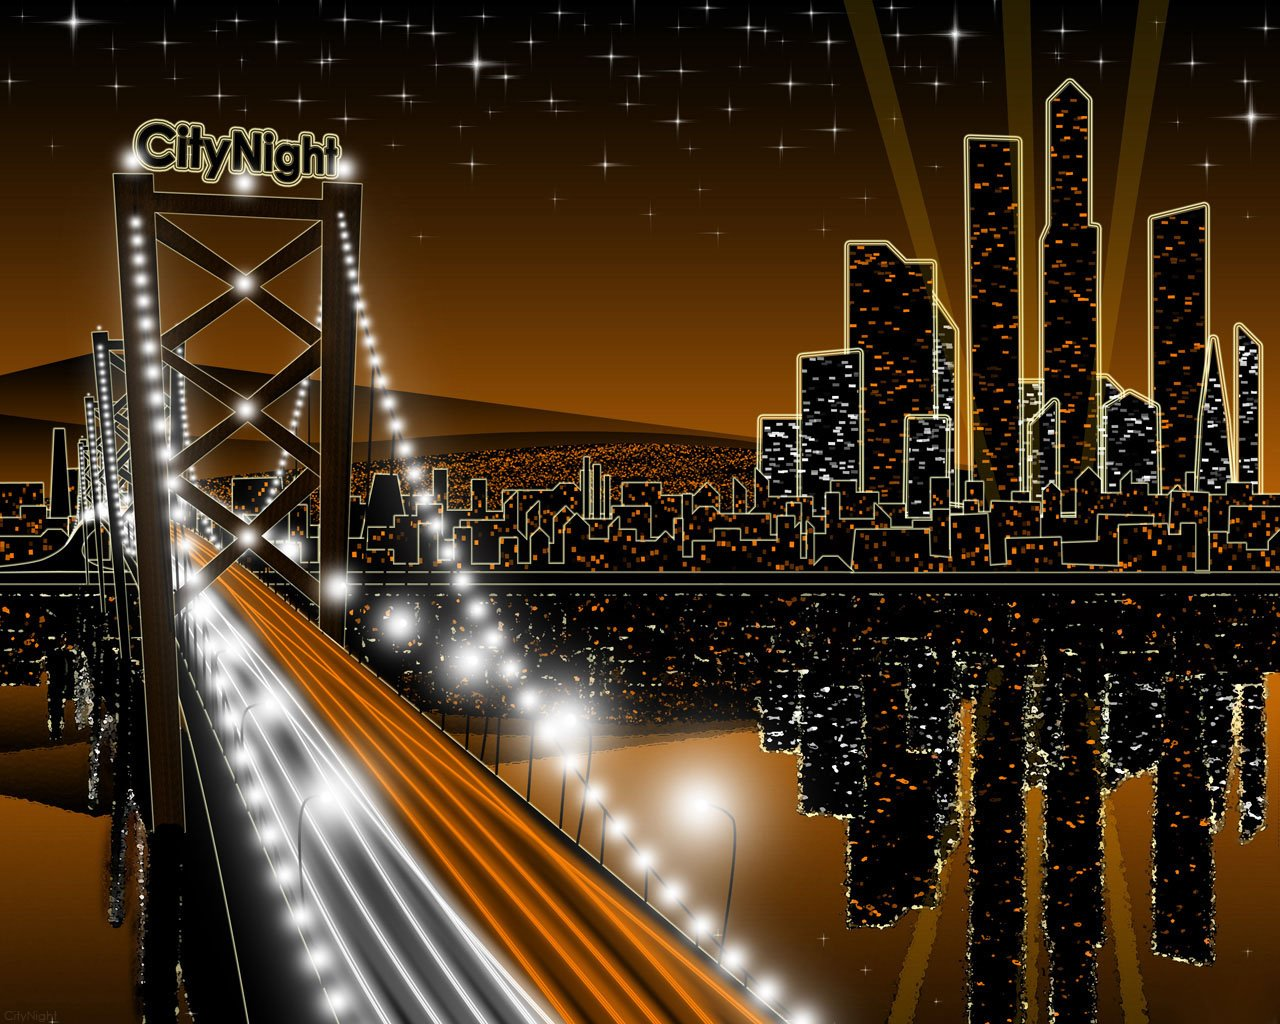 City Night Wallpapers City Night Backgrounds City Night HD 1280x1024